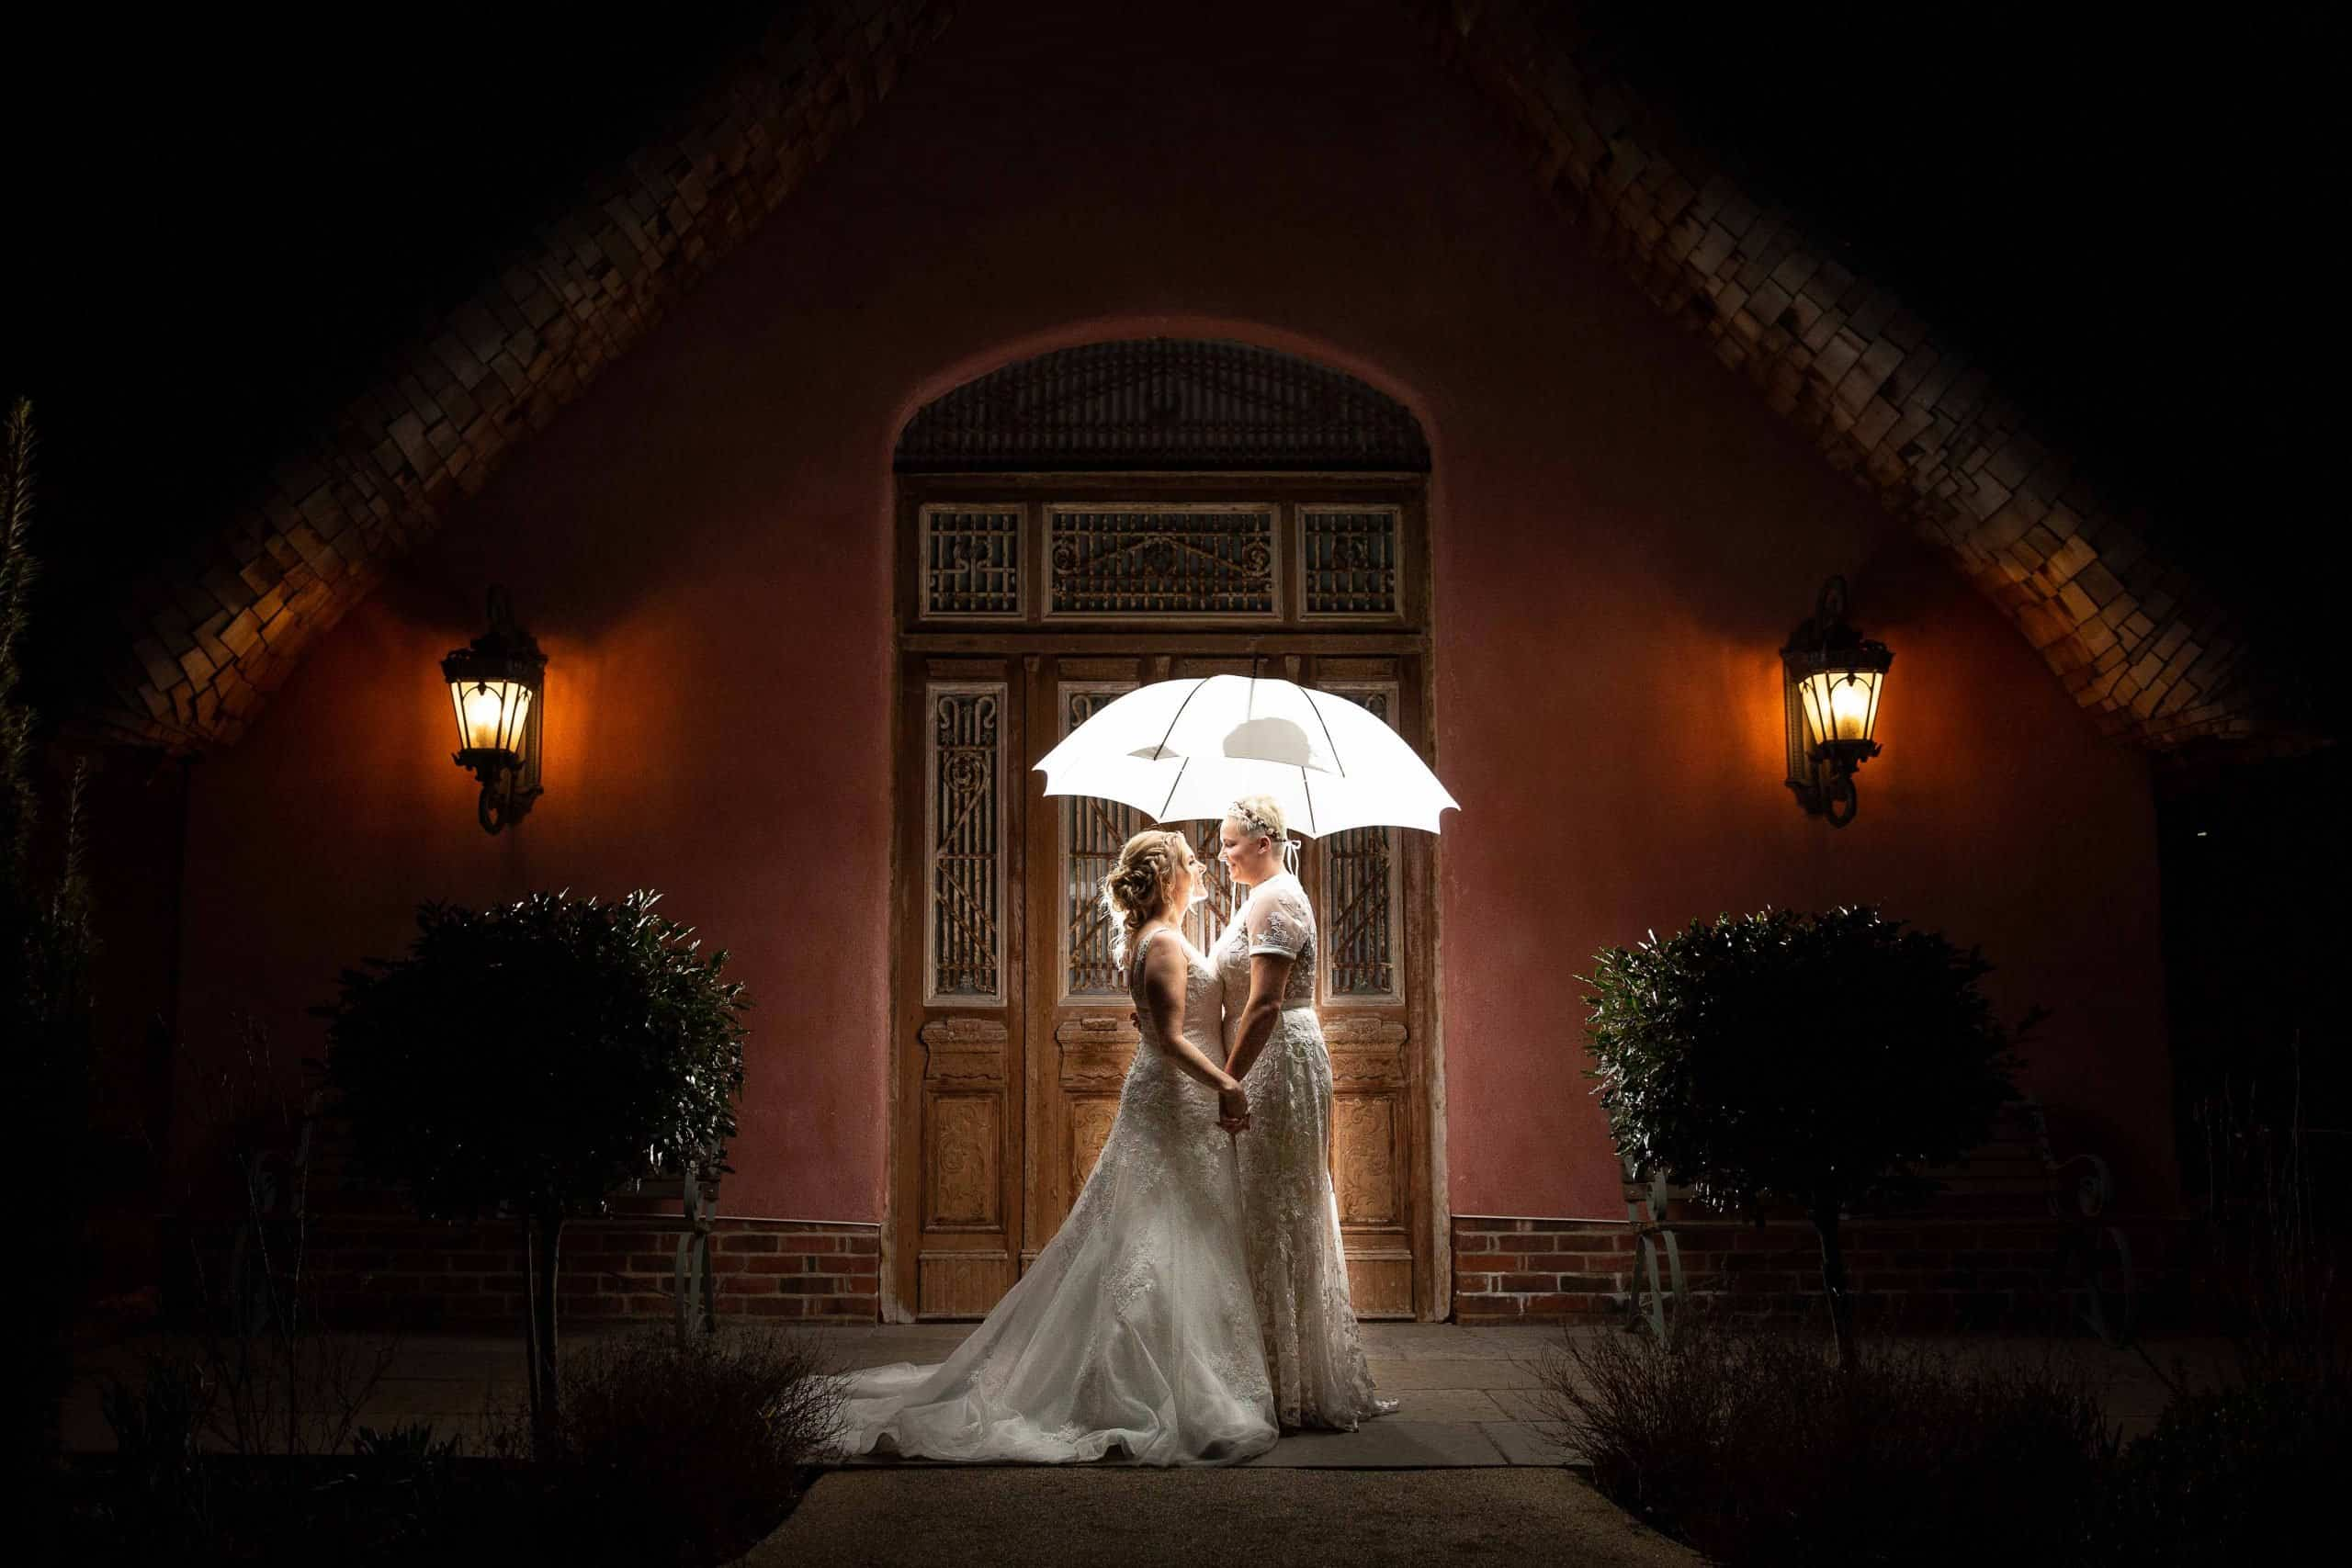 Creative wedding photography at Le Petit Chateau